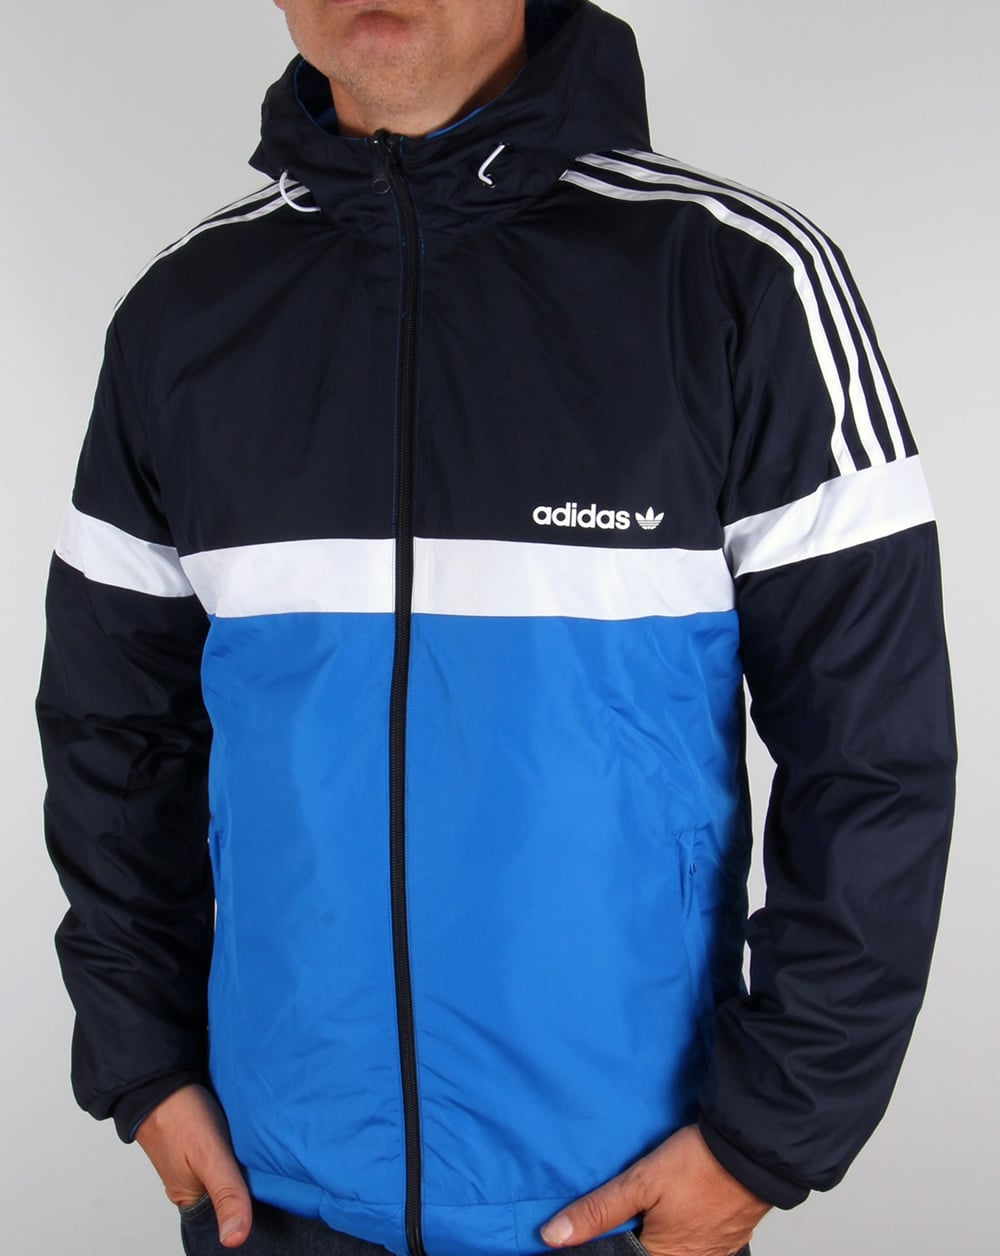 adidas originals reversible windbreaker navy bluebird jacket coat mens. Black Bedroom Furniture Sets. Home Design Ideas